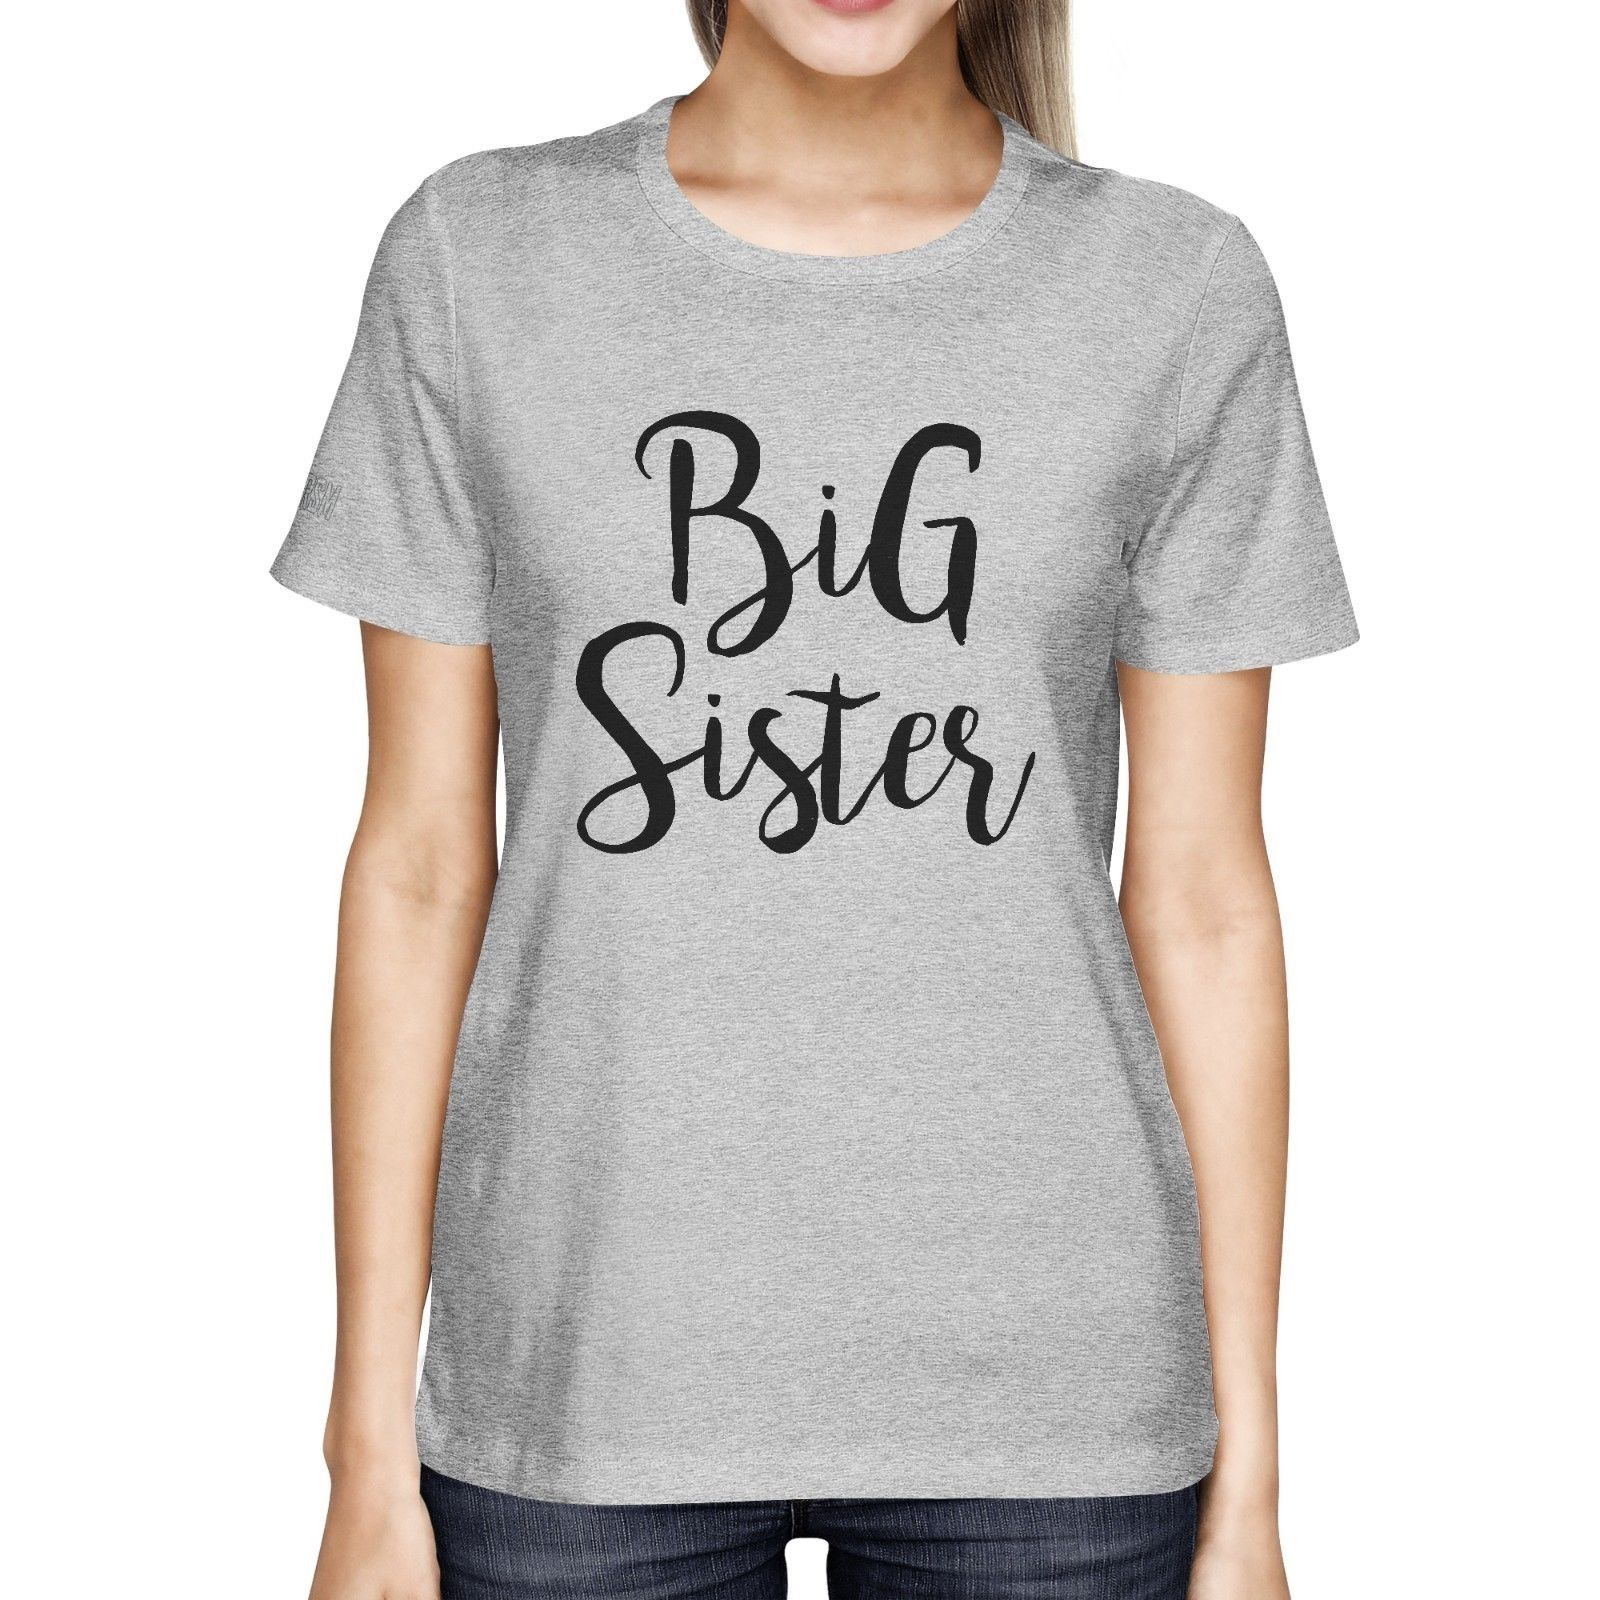 Big Middle Little Sister Matching T-shirts Gifts for Sis Grey Basic Style Tee Custom Printed Tops Hot Sales Tee T Shirts